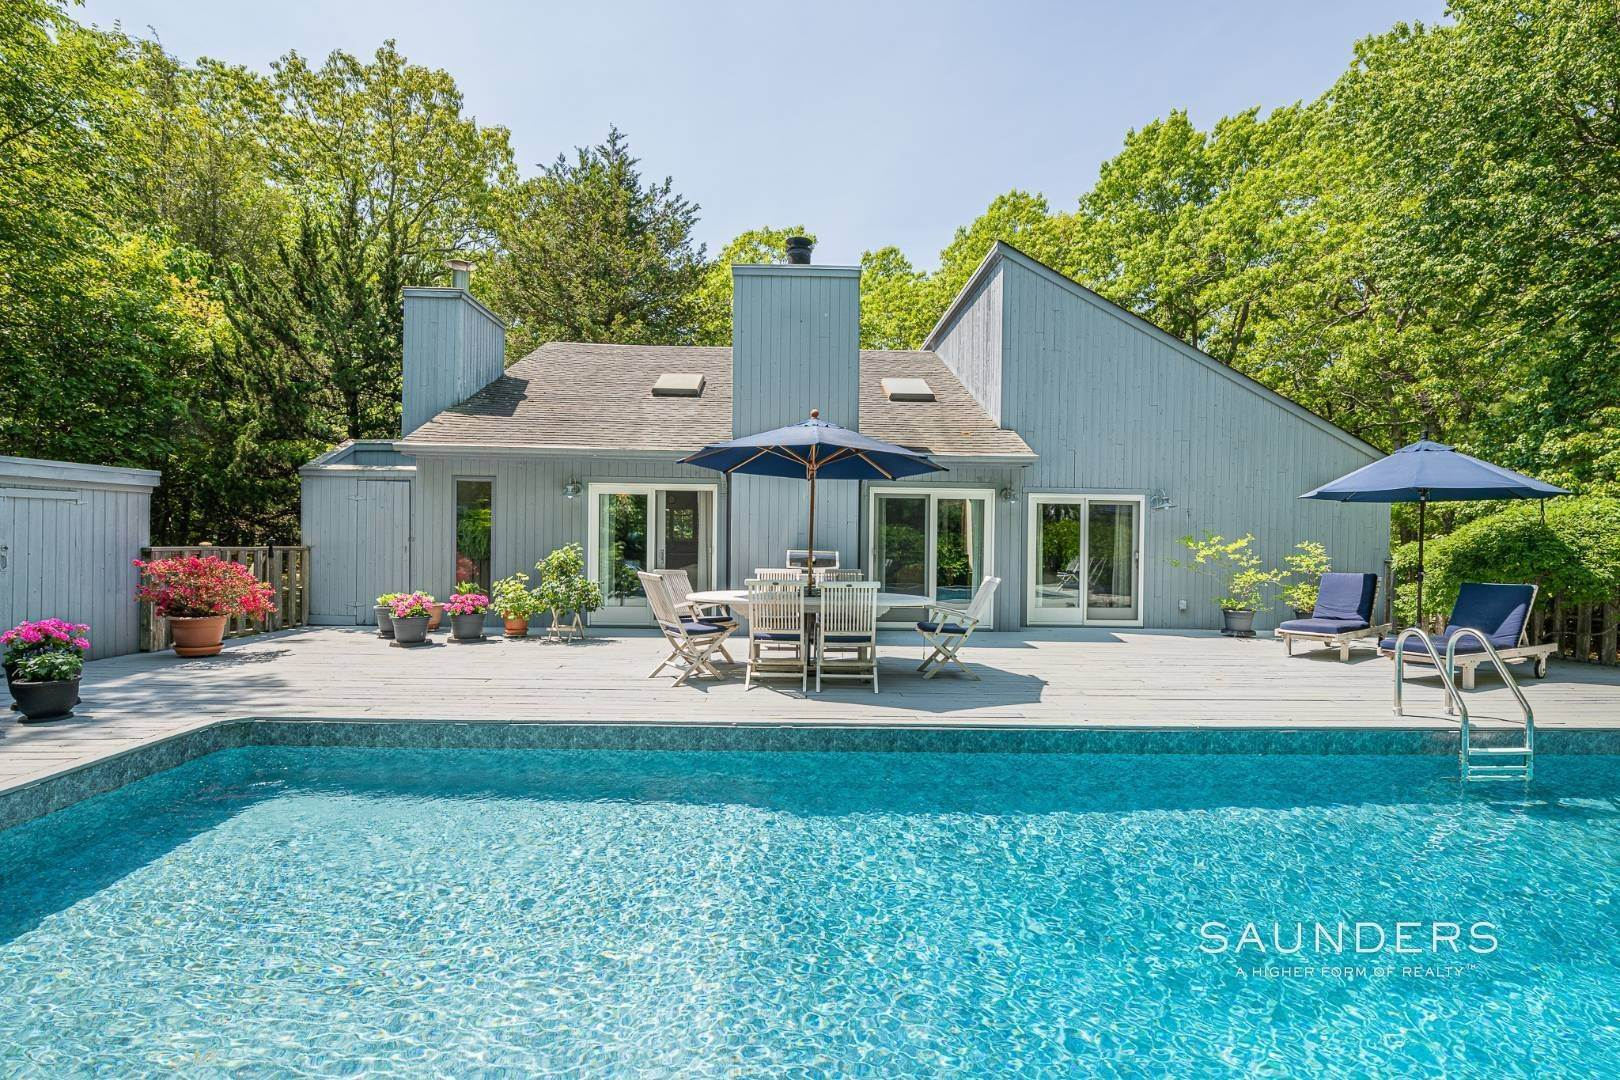 Single Family Homes for Sale at Beach House By The Bay 31 Long Woods Lane, East Hampton, East Hampton Town, NY 11937